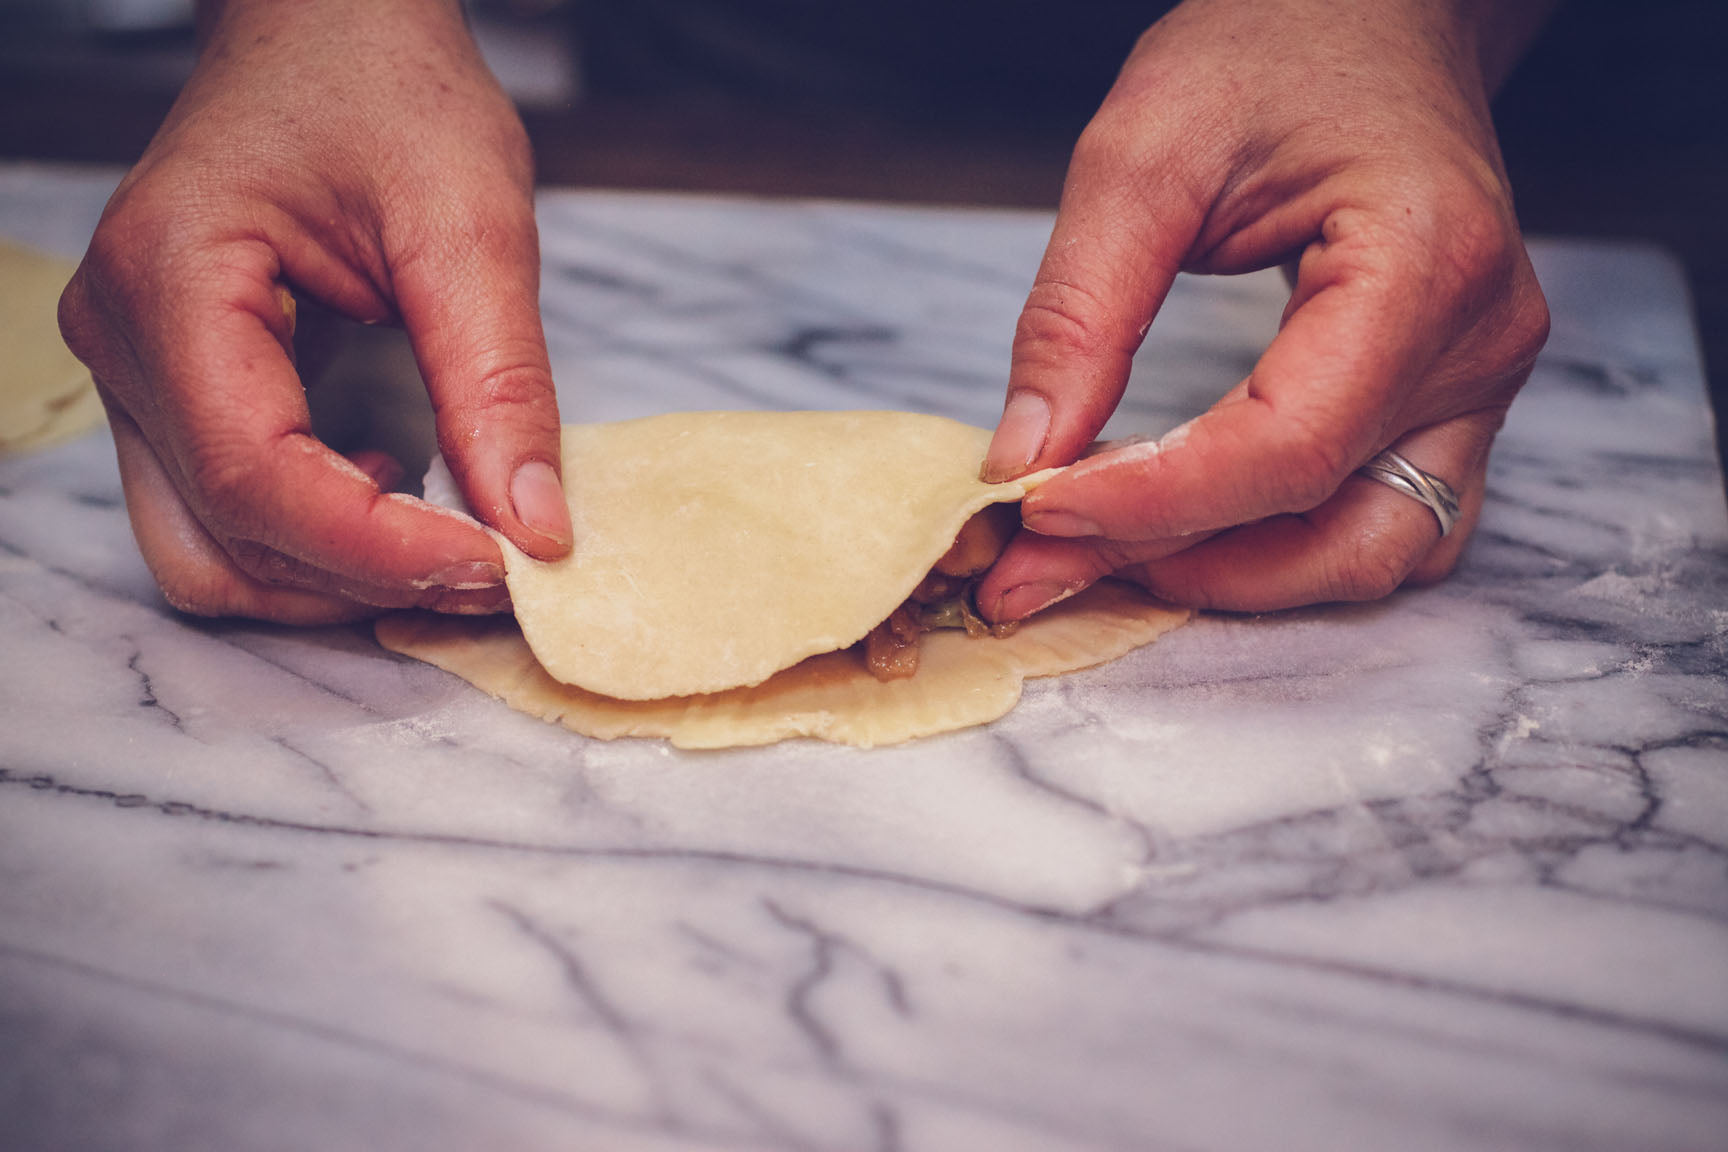 fold over dough to a cresent